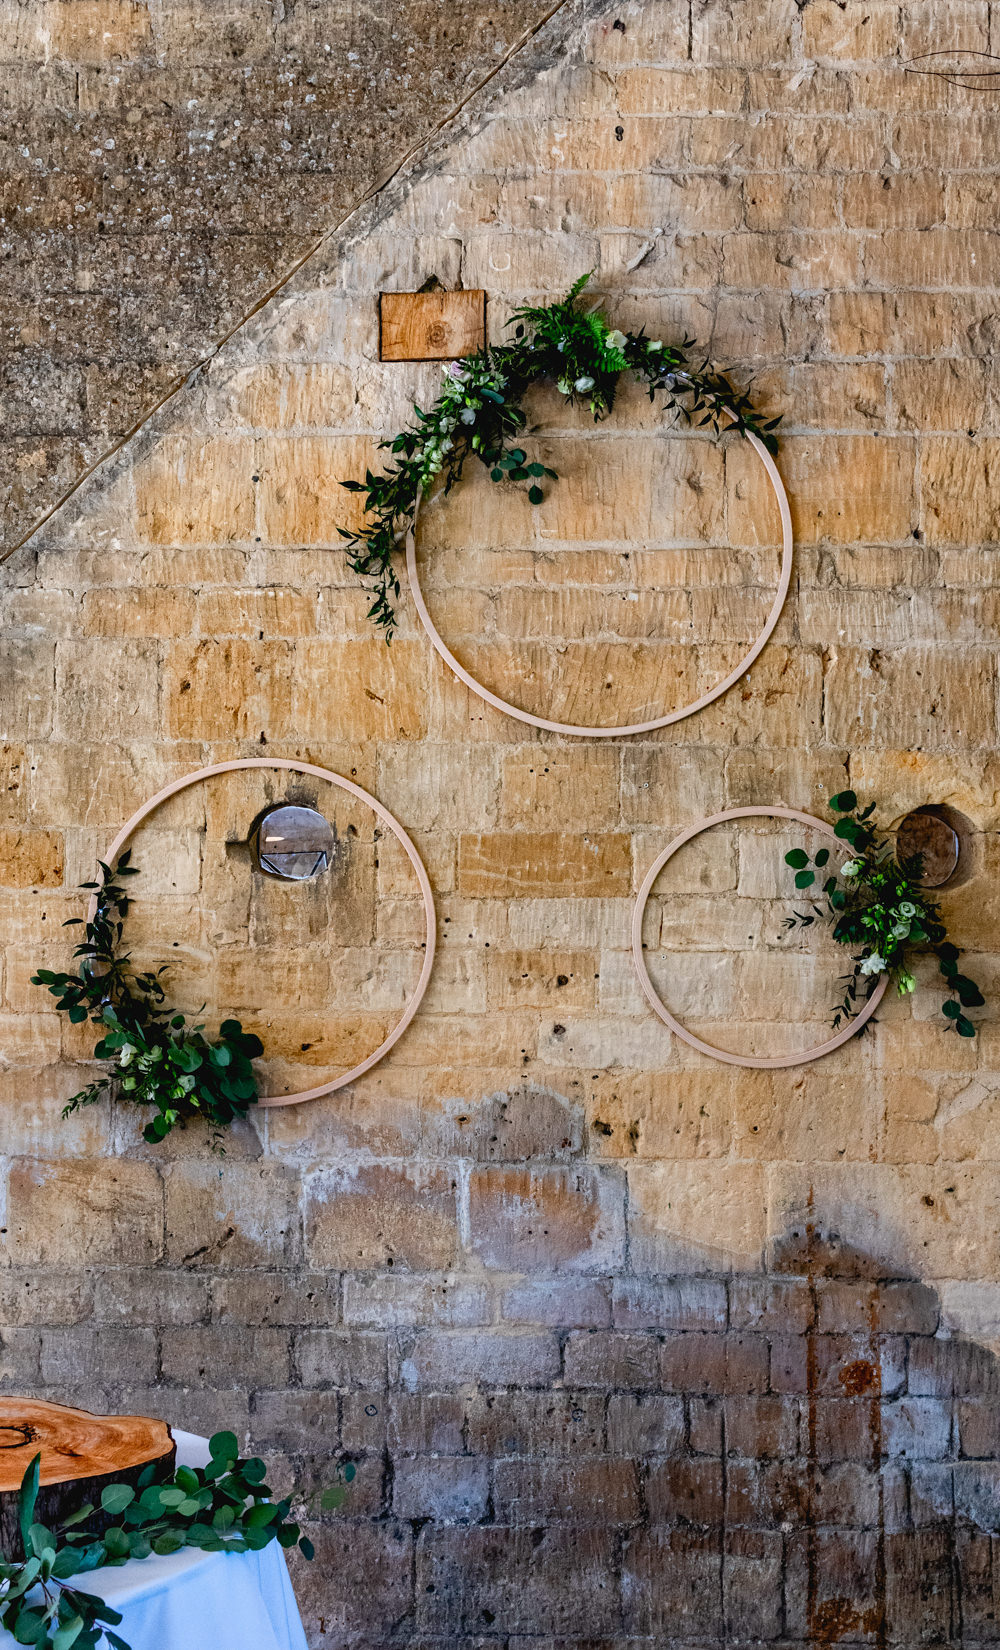 Hoop Wooden Greenery Foliage Hanging Cotswolds Barn Wedding Lisa Carpenter Photography